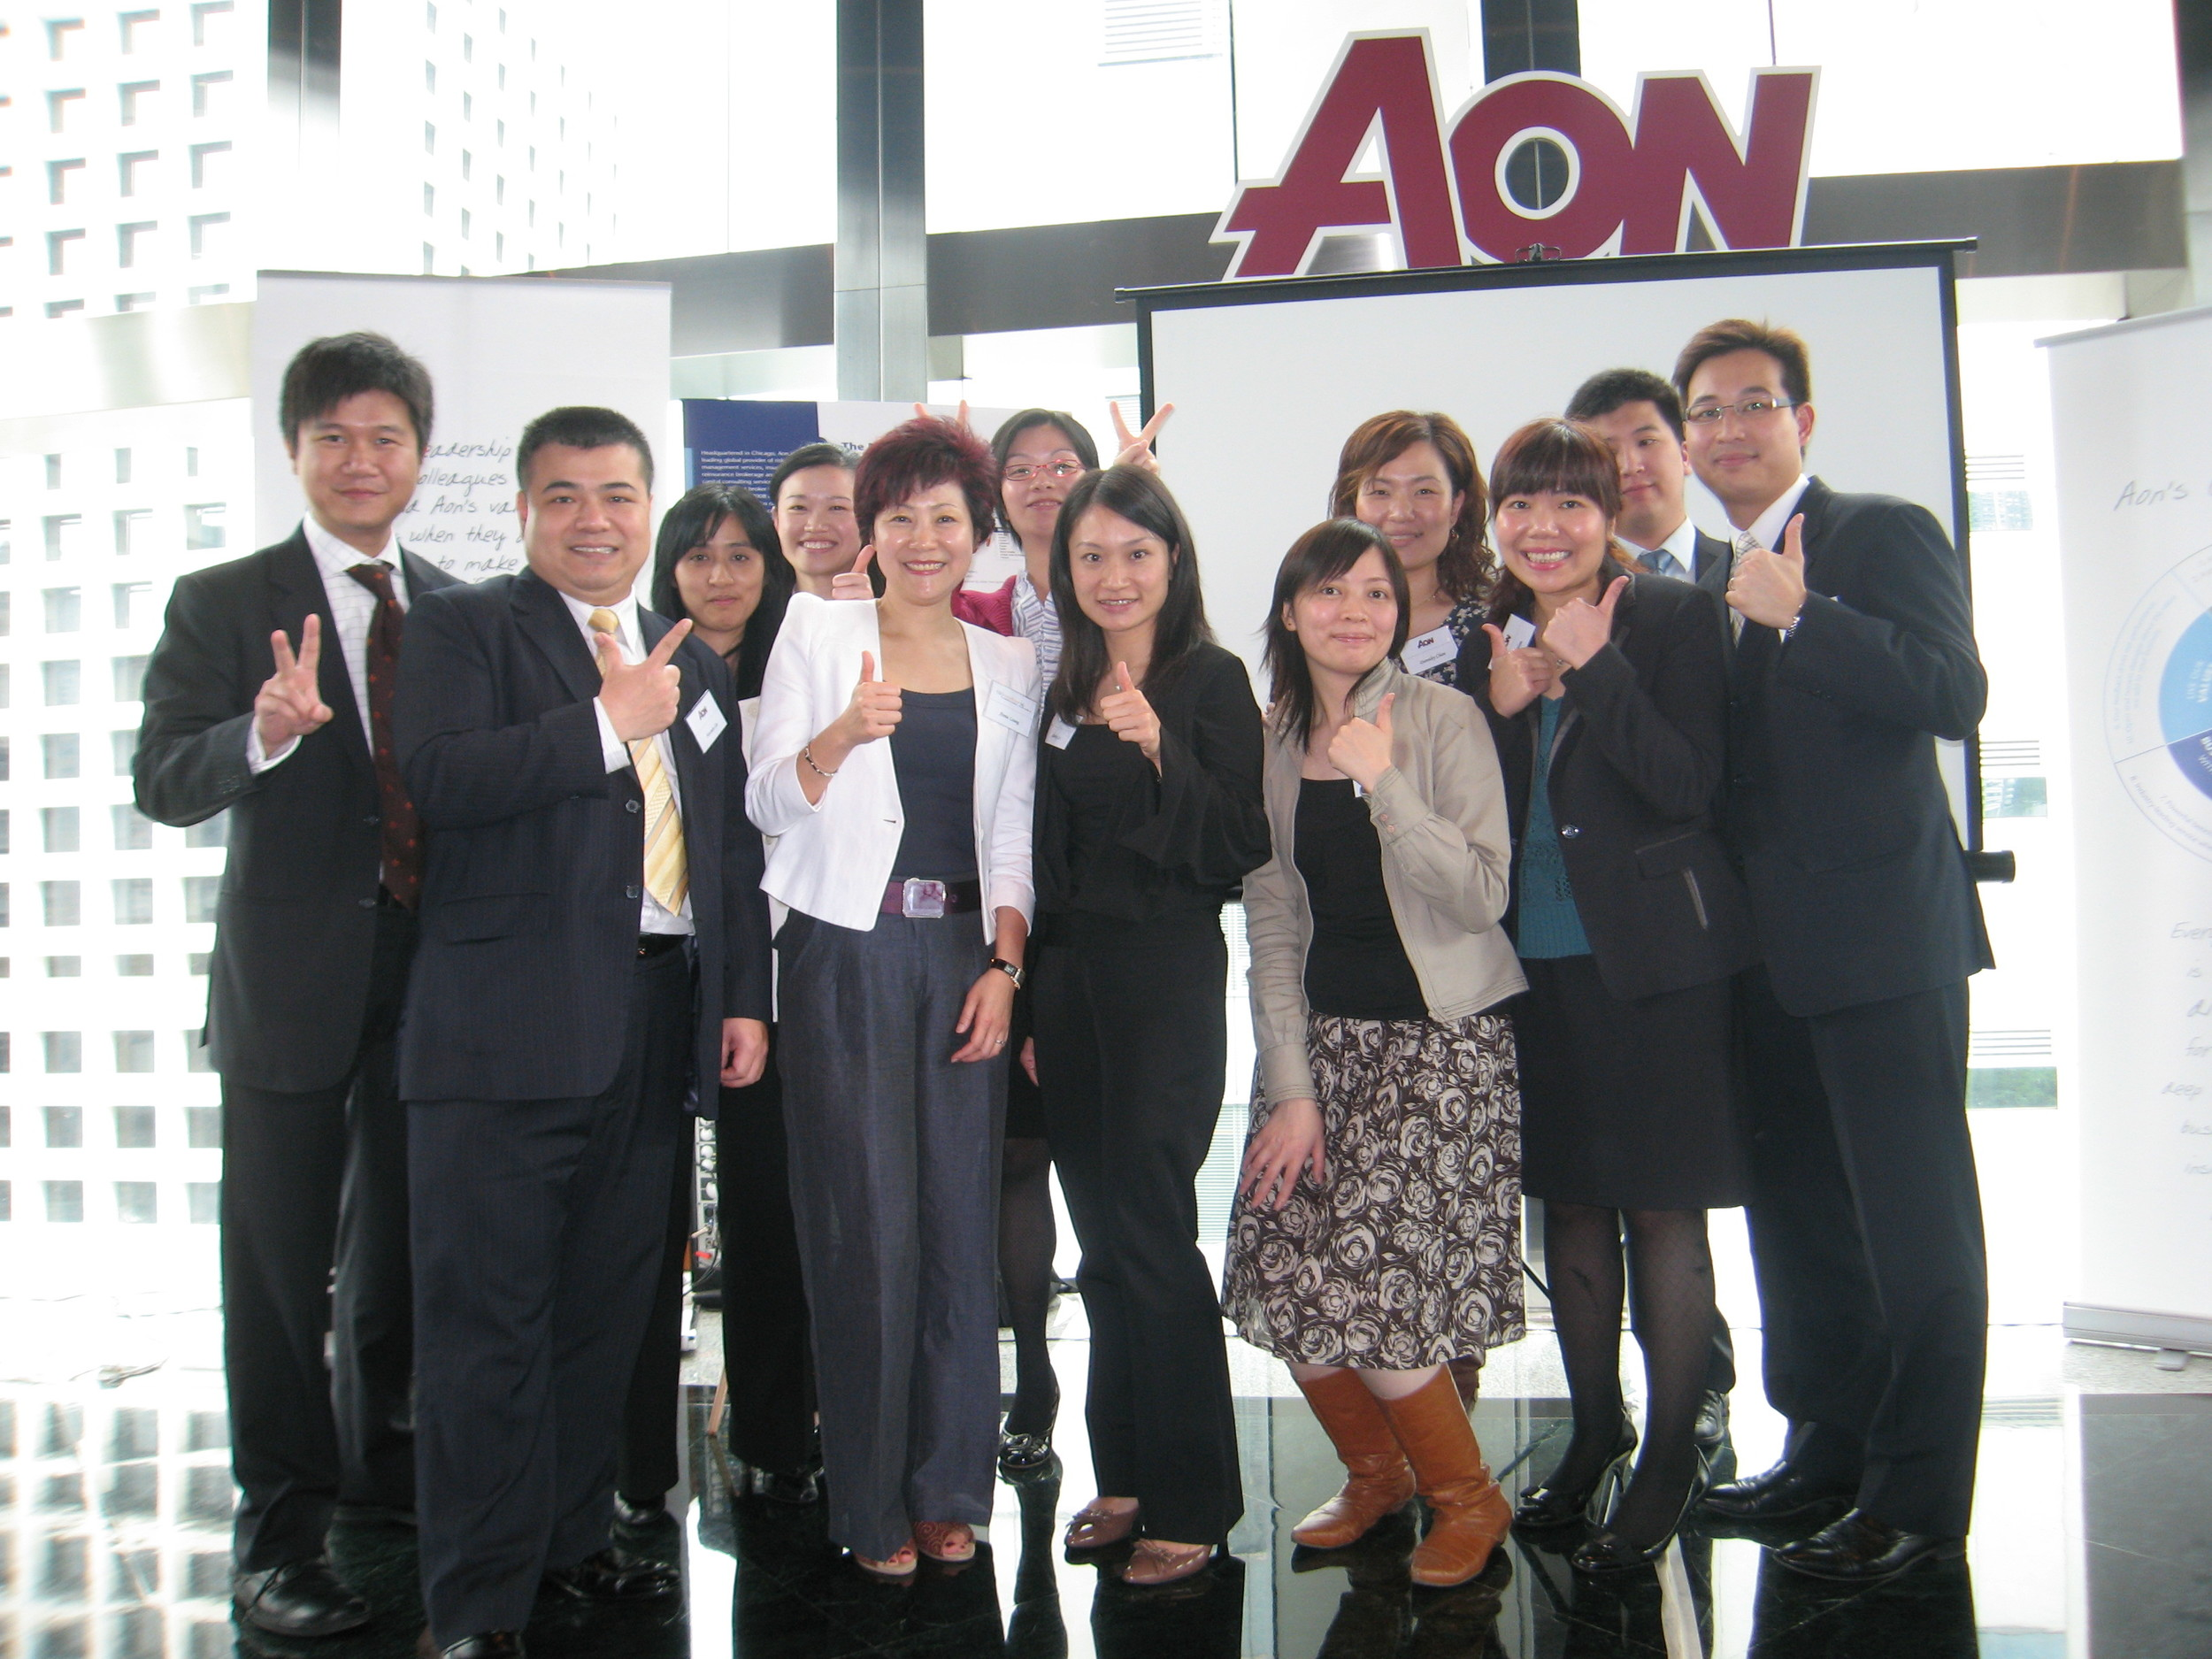 Aon   Peak Performance mindPower™ Leadership Program (Managers), 2009.